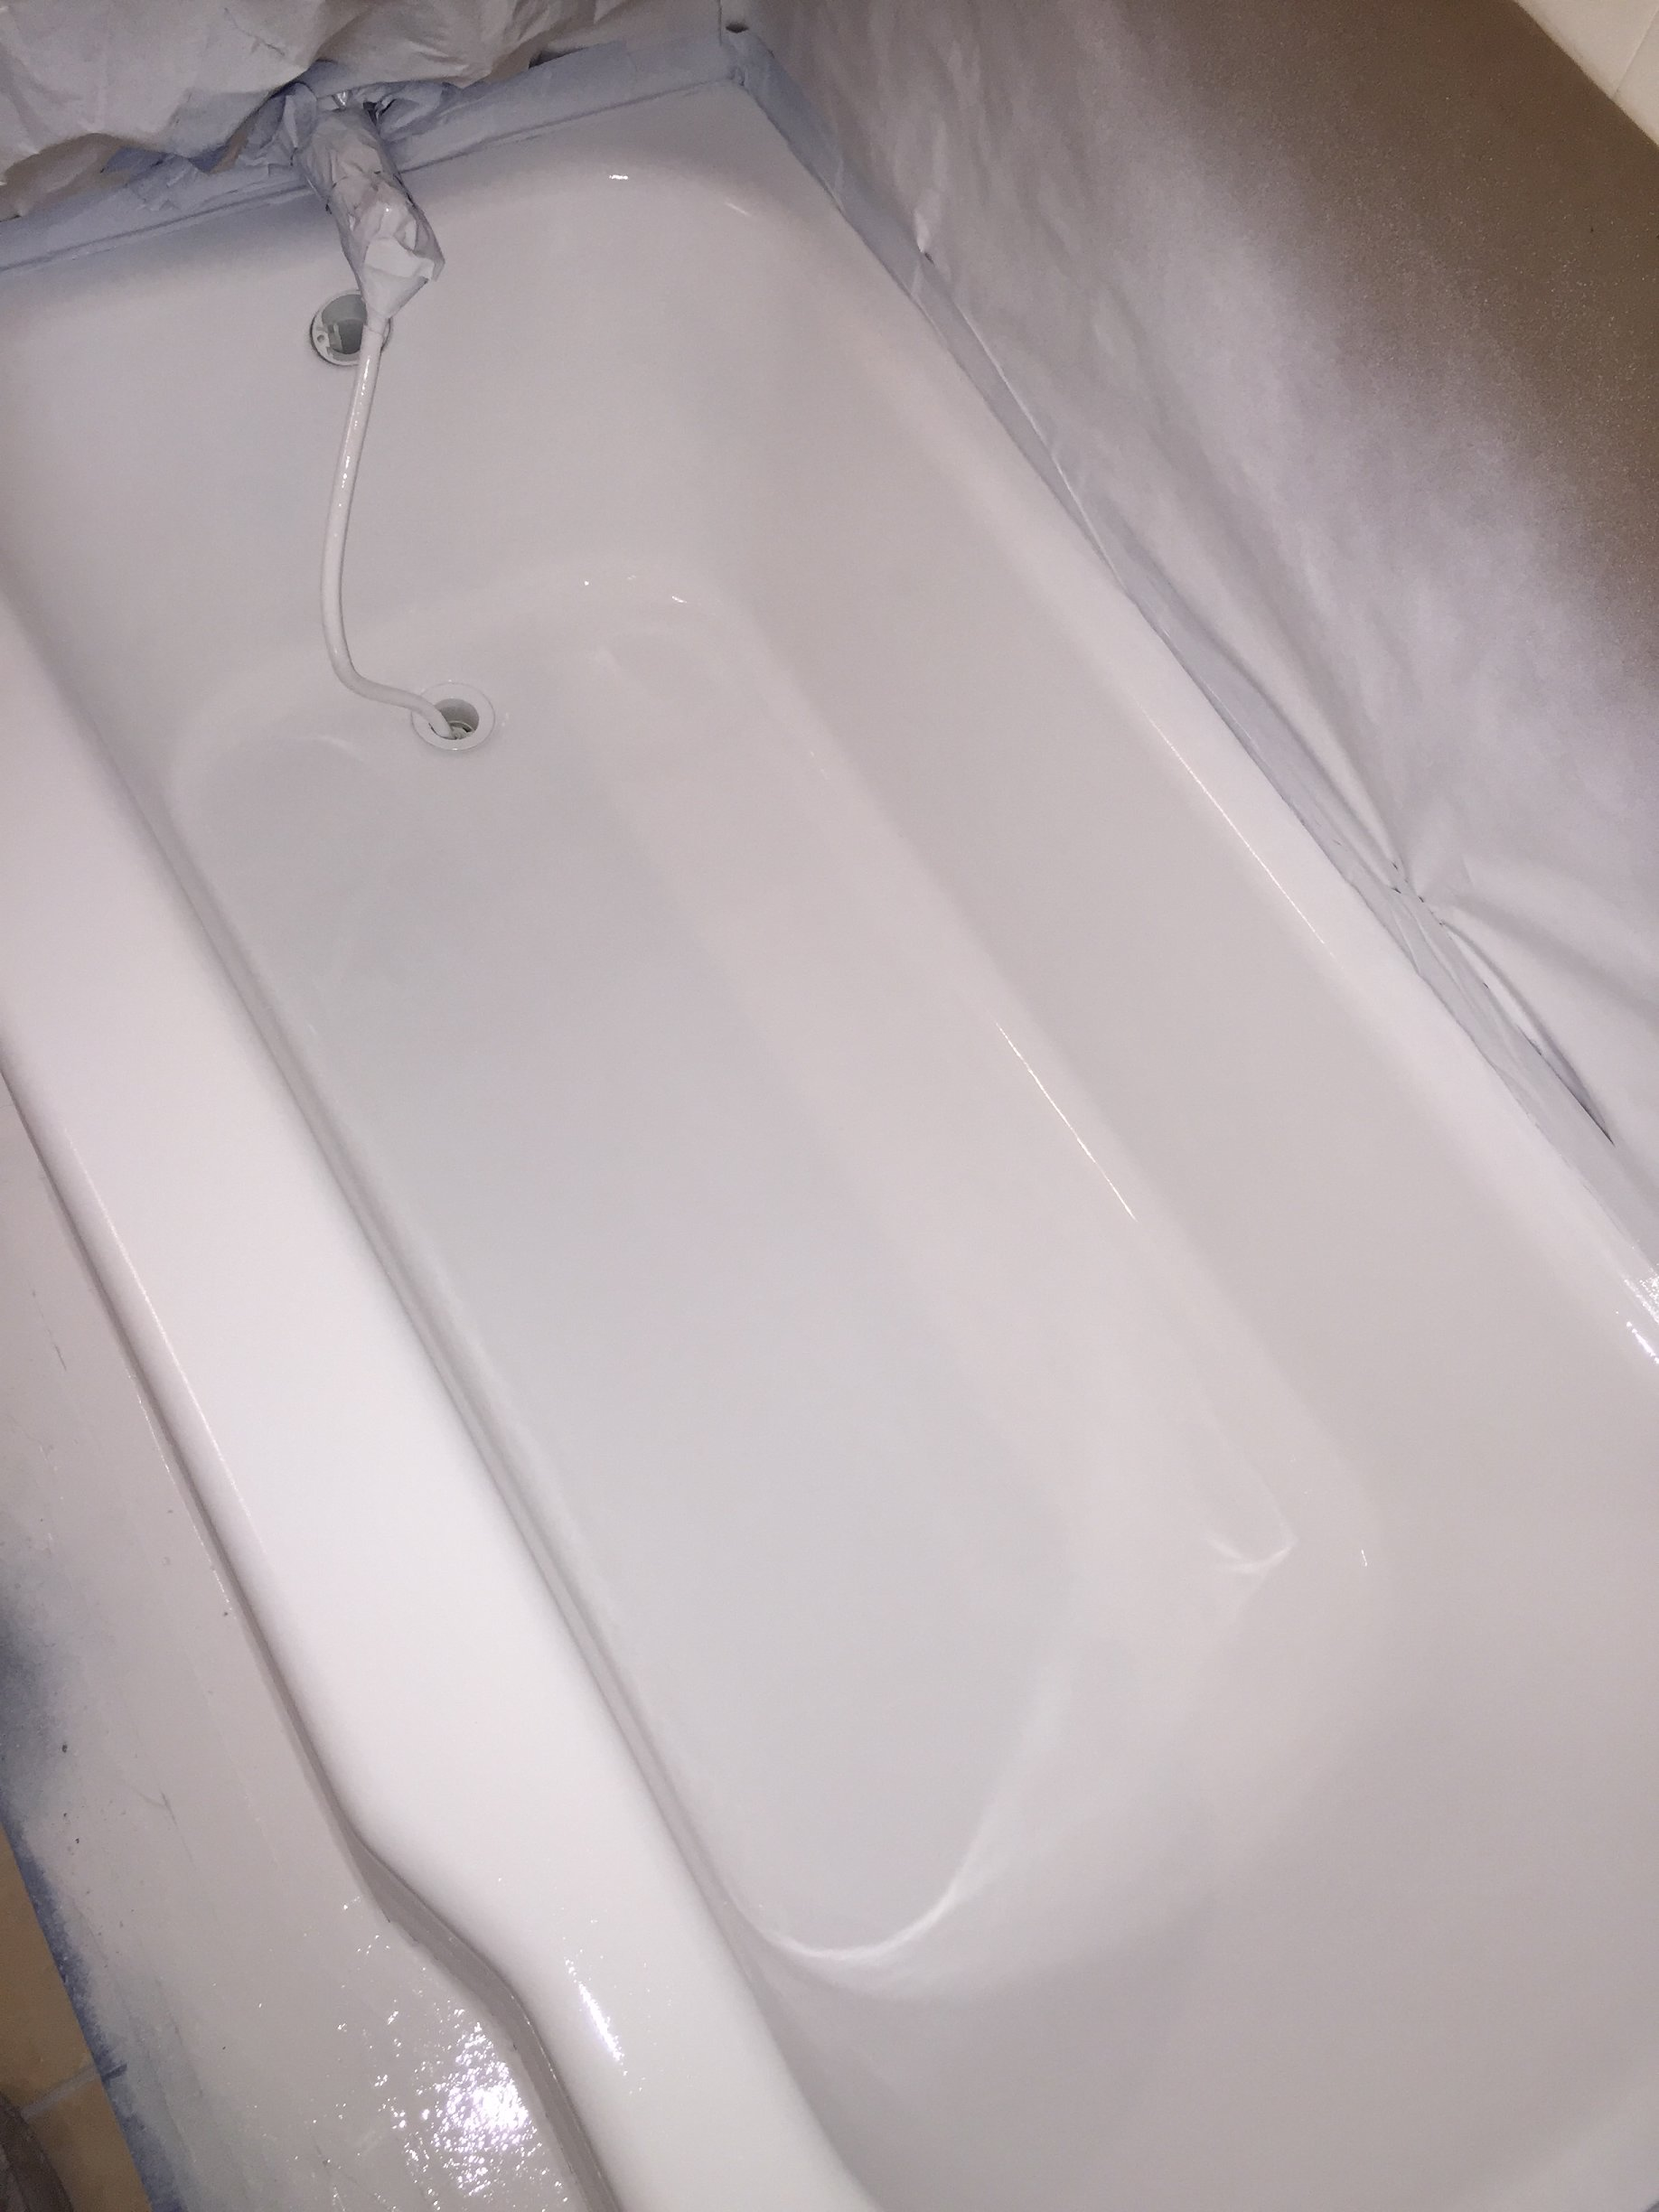 Ouch! Bathtub Resurfacing Gone Bad: Exposing Shady Business Inside ...